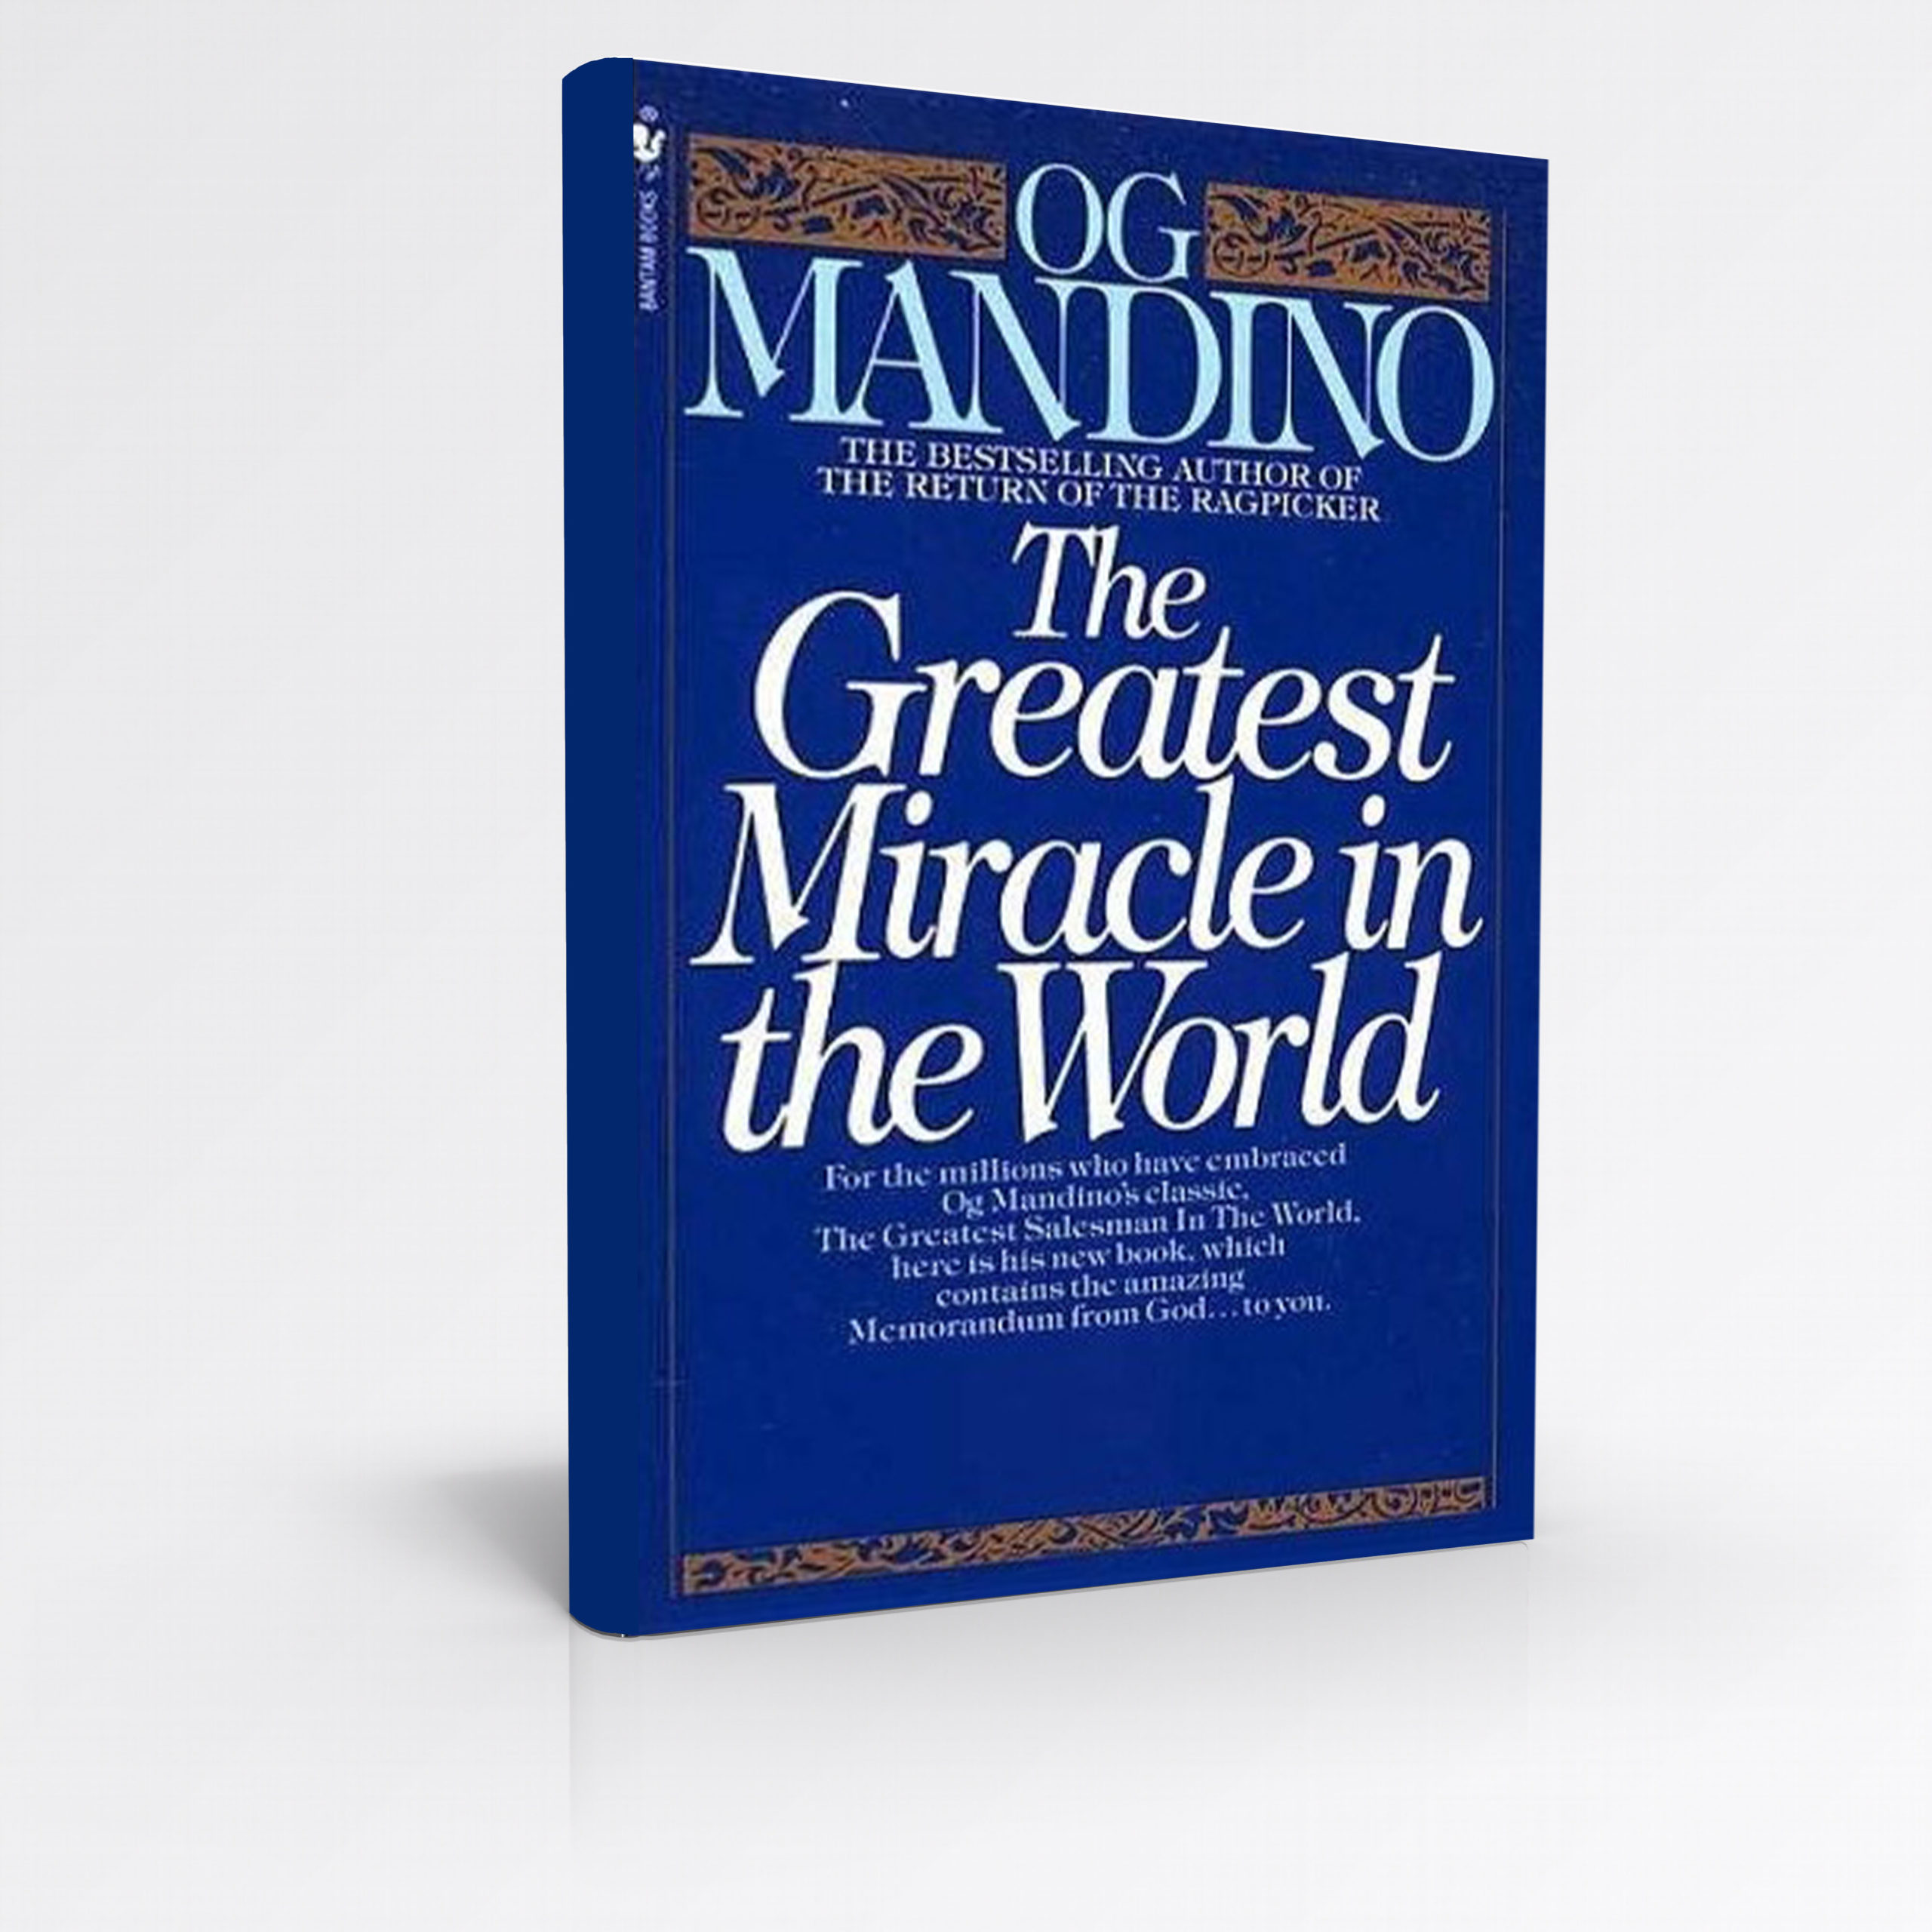 The Greatest Miracle in the World - Book